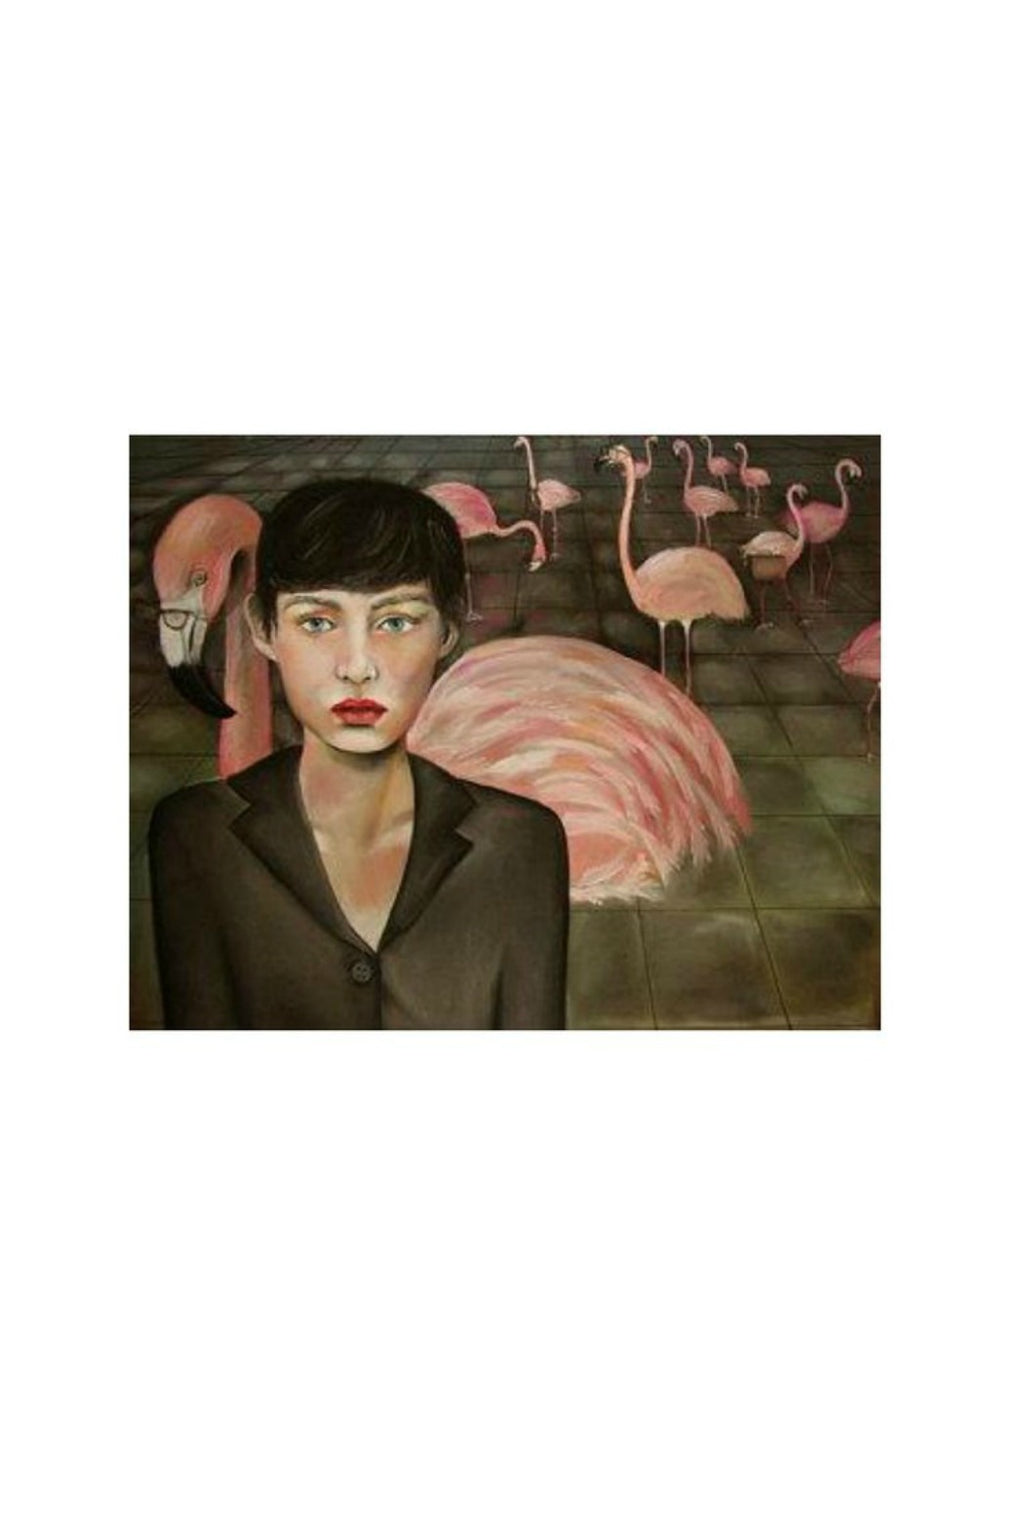 Caryn Cast Print - Corporate America (Flamingos)